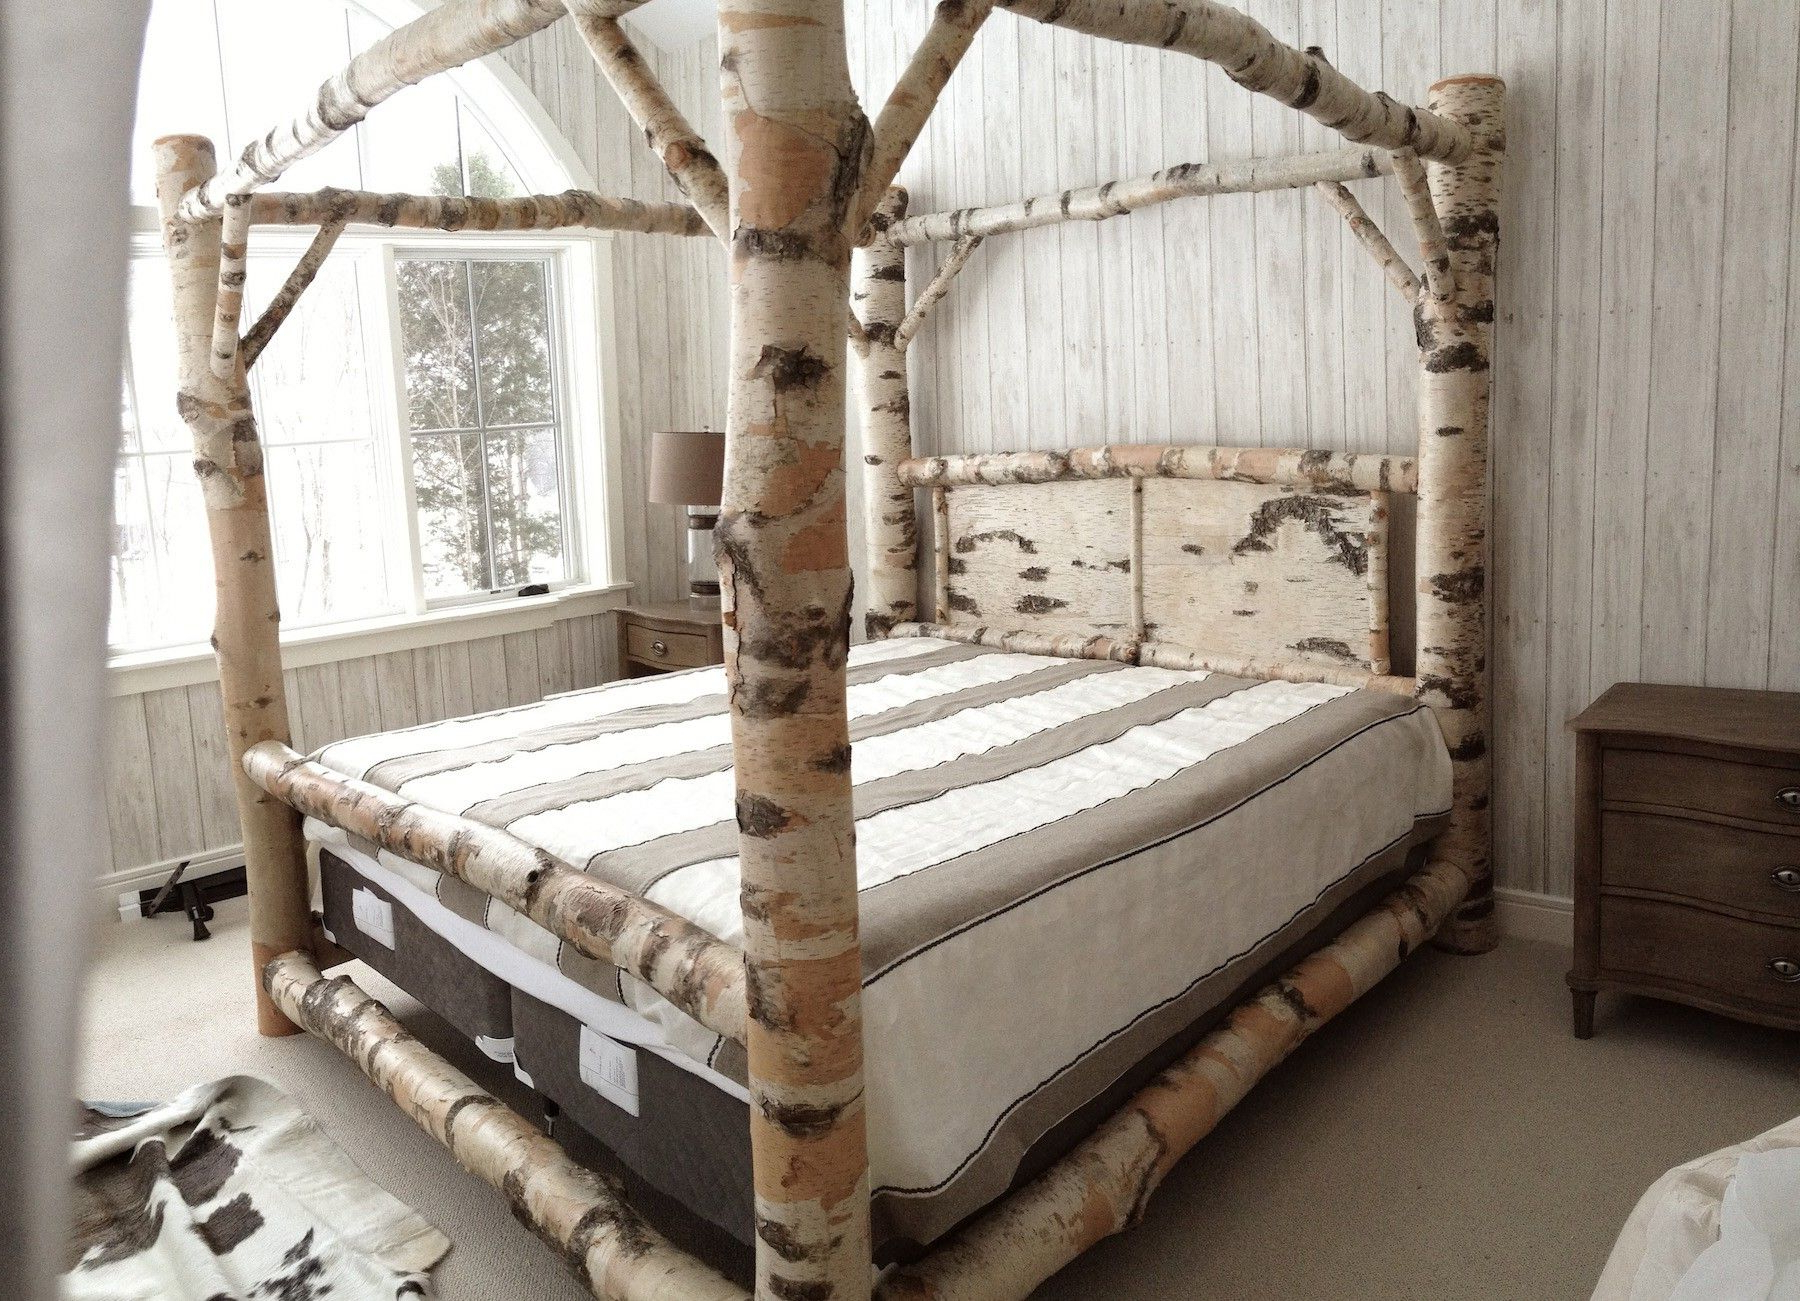 2019 Bamboo Daybeds With Canopy Intended For Bamboo Bedroom Furniture For Traditional Bedroom Look (View 1 of 25)